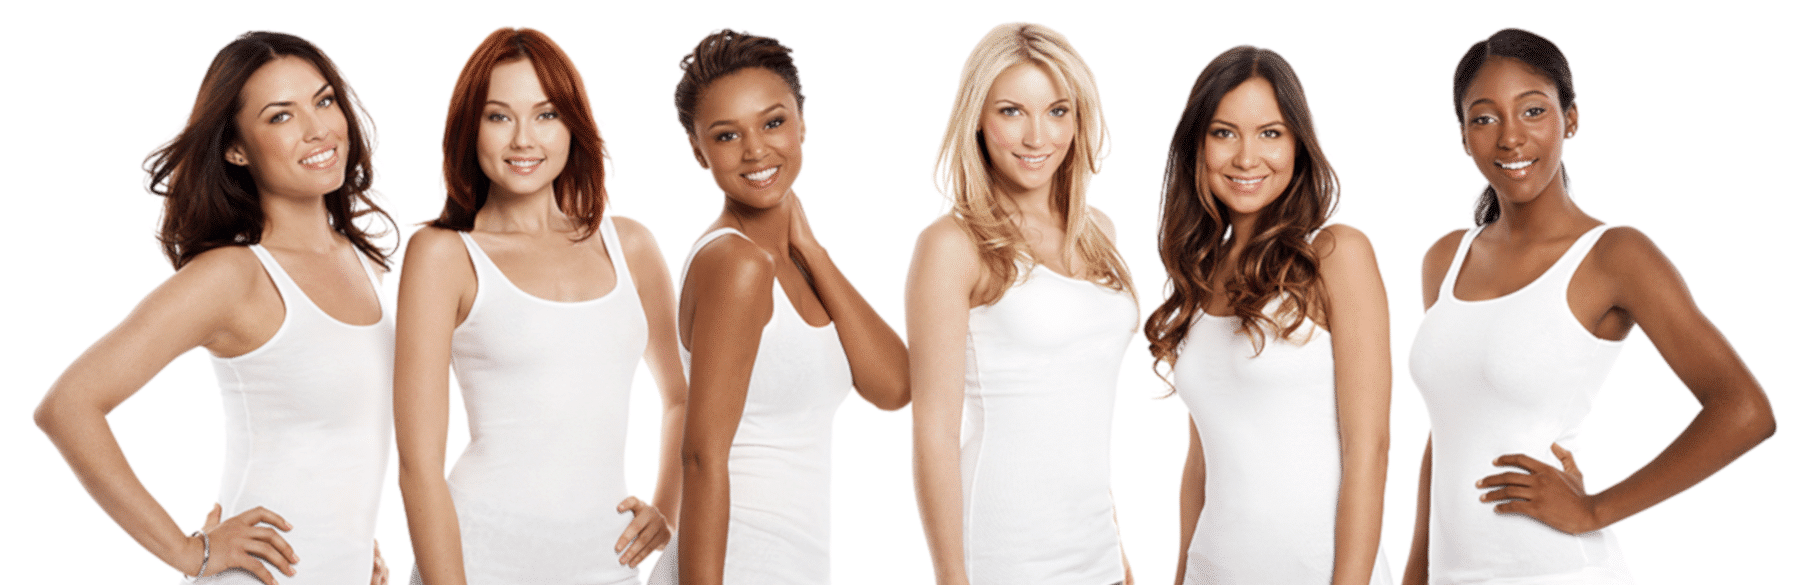 Laser Hair Removal for Women and all skin types at The Spa Therapy Room